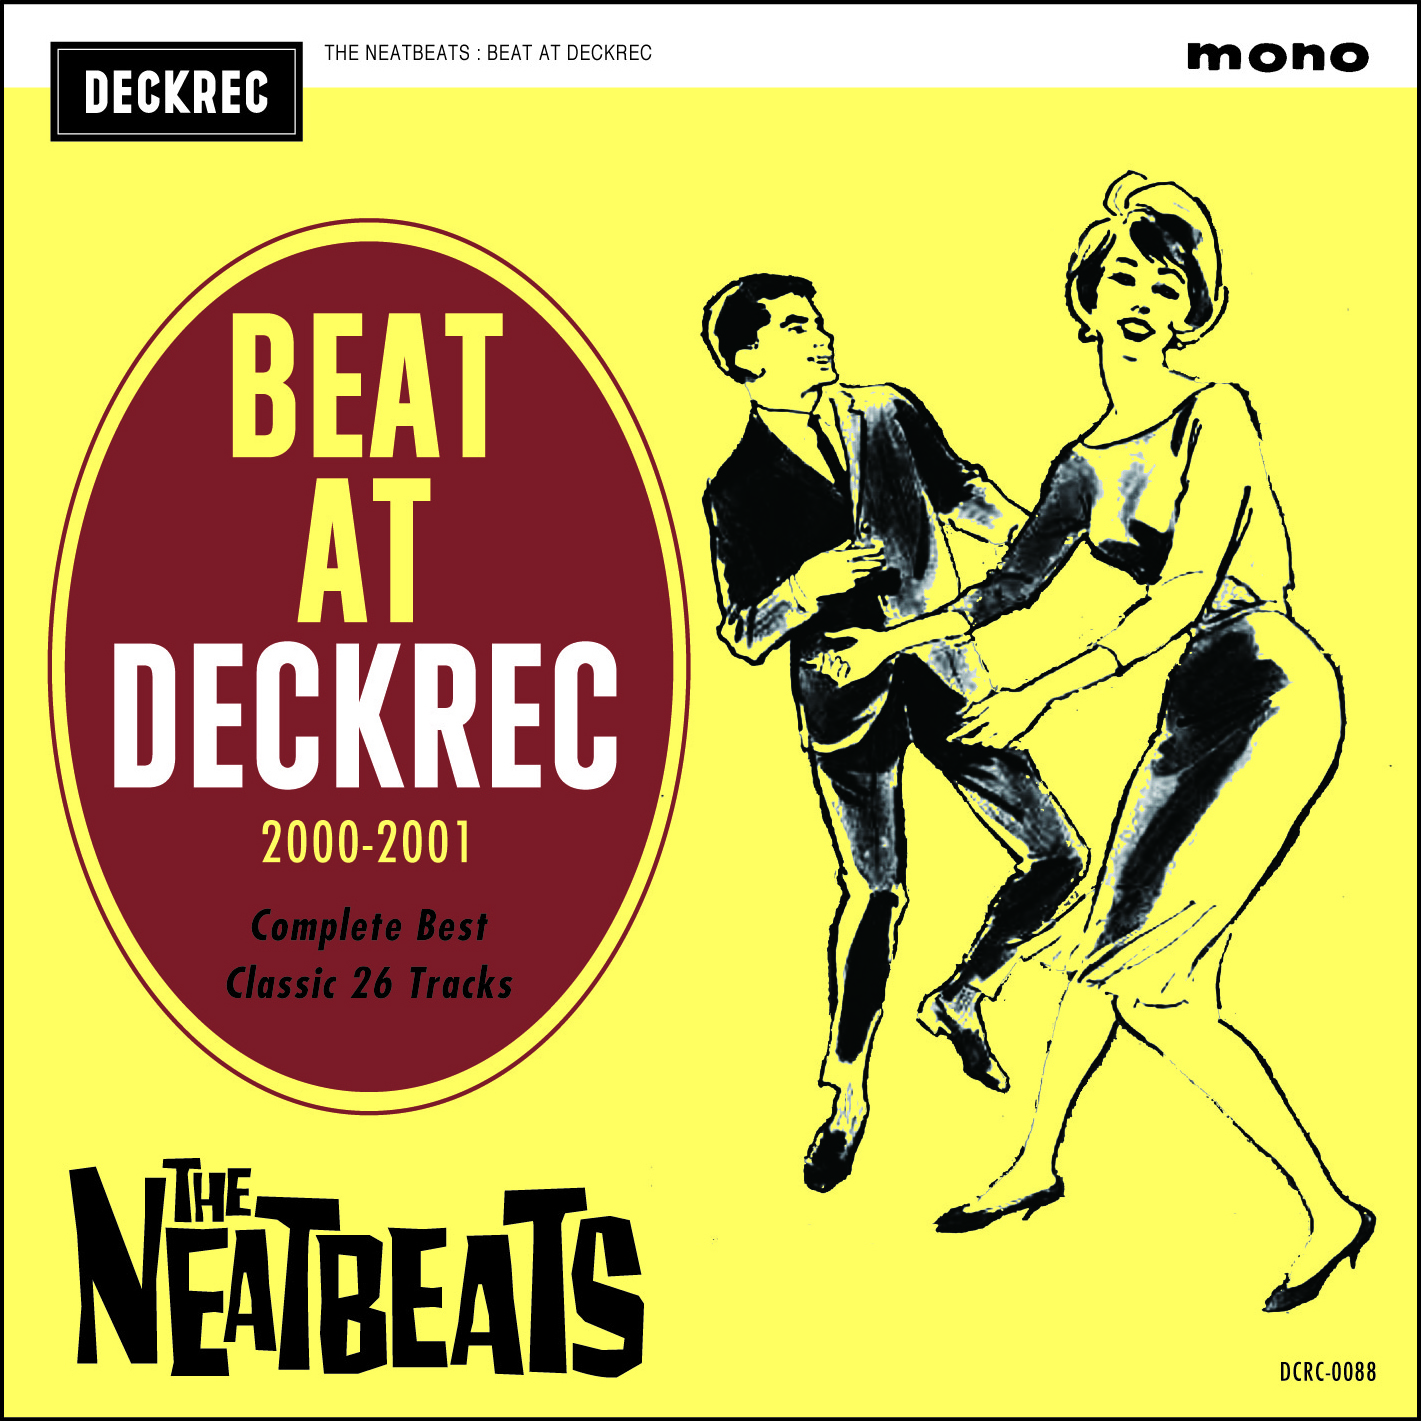 『BEAT AT DECKREC ~2000 - 2001 COMPLETE BEST~』